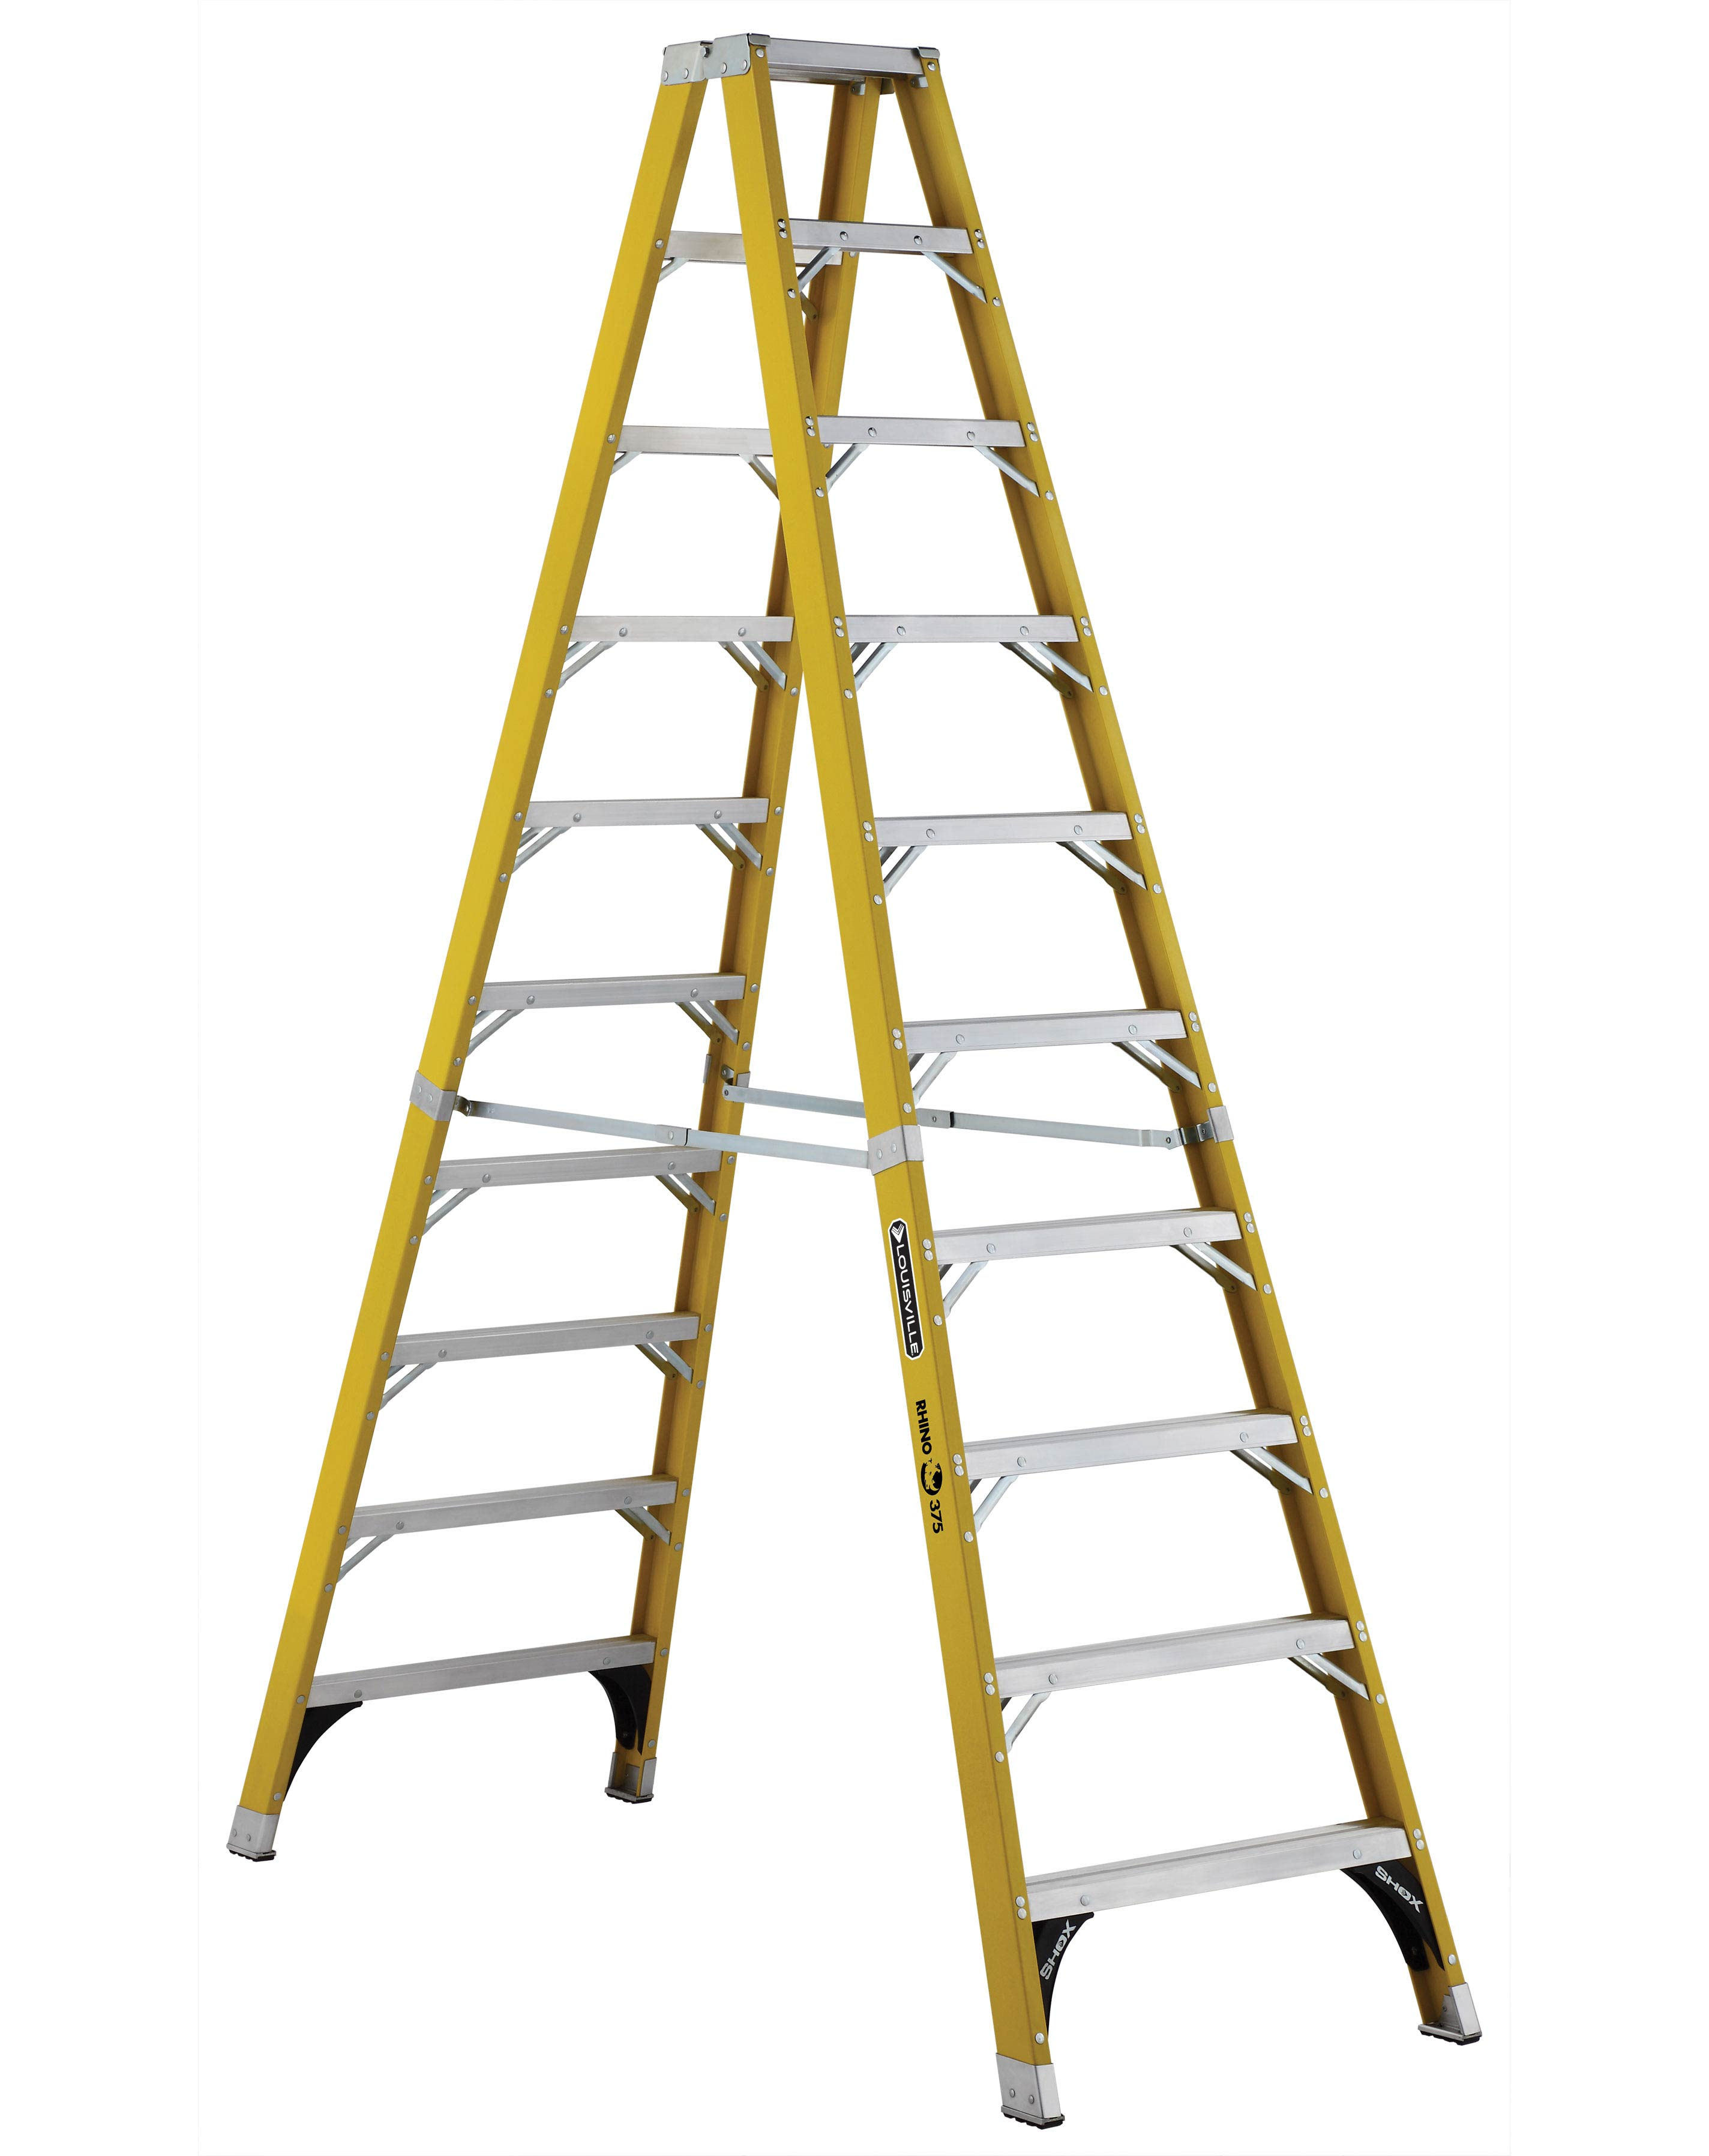 L-VIL FM1110HD 10FT FBGL STP LADDERLIKELY SUBJECT TO TAX